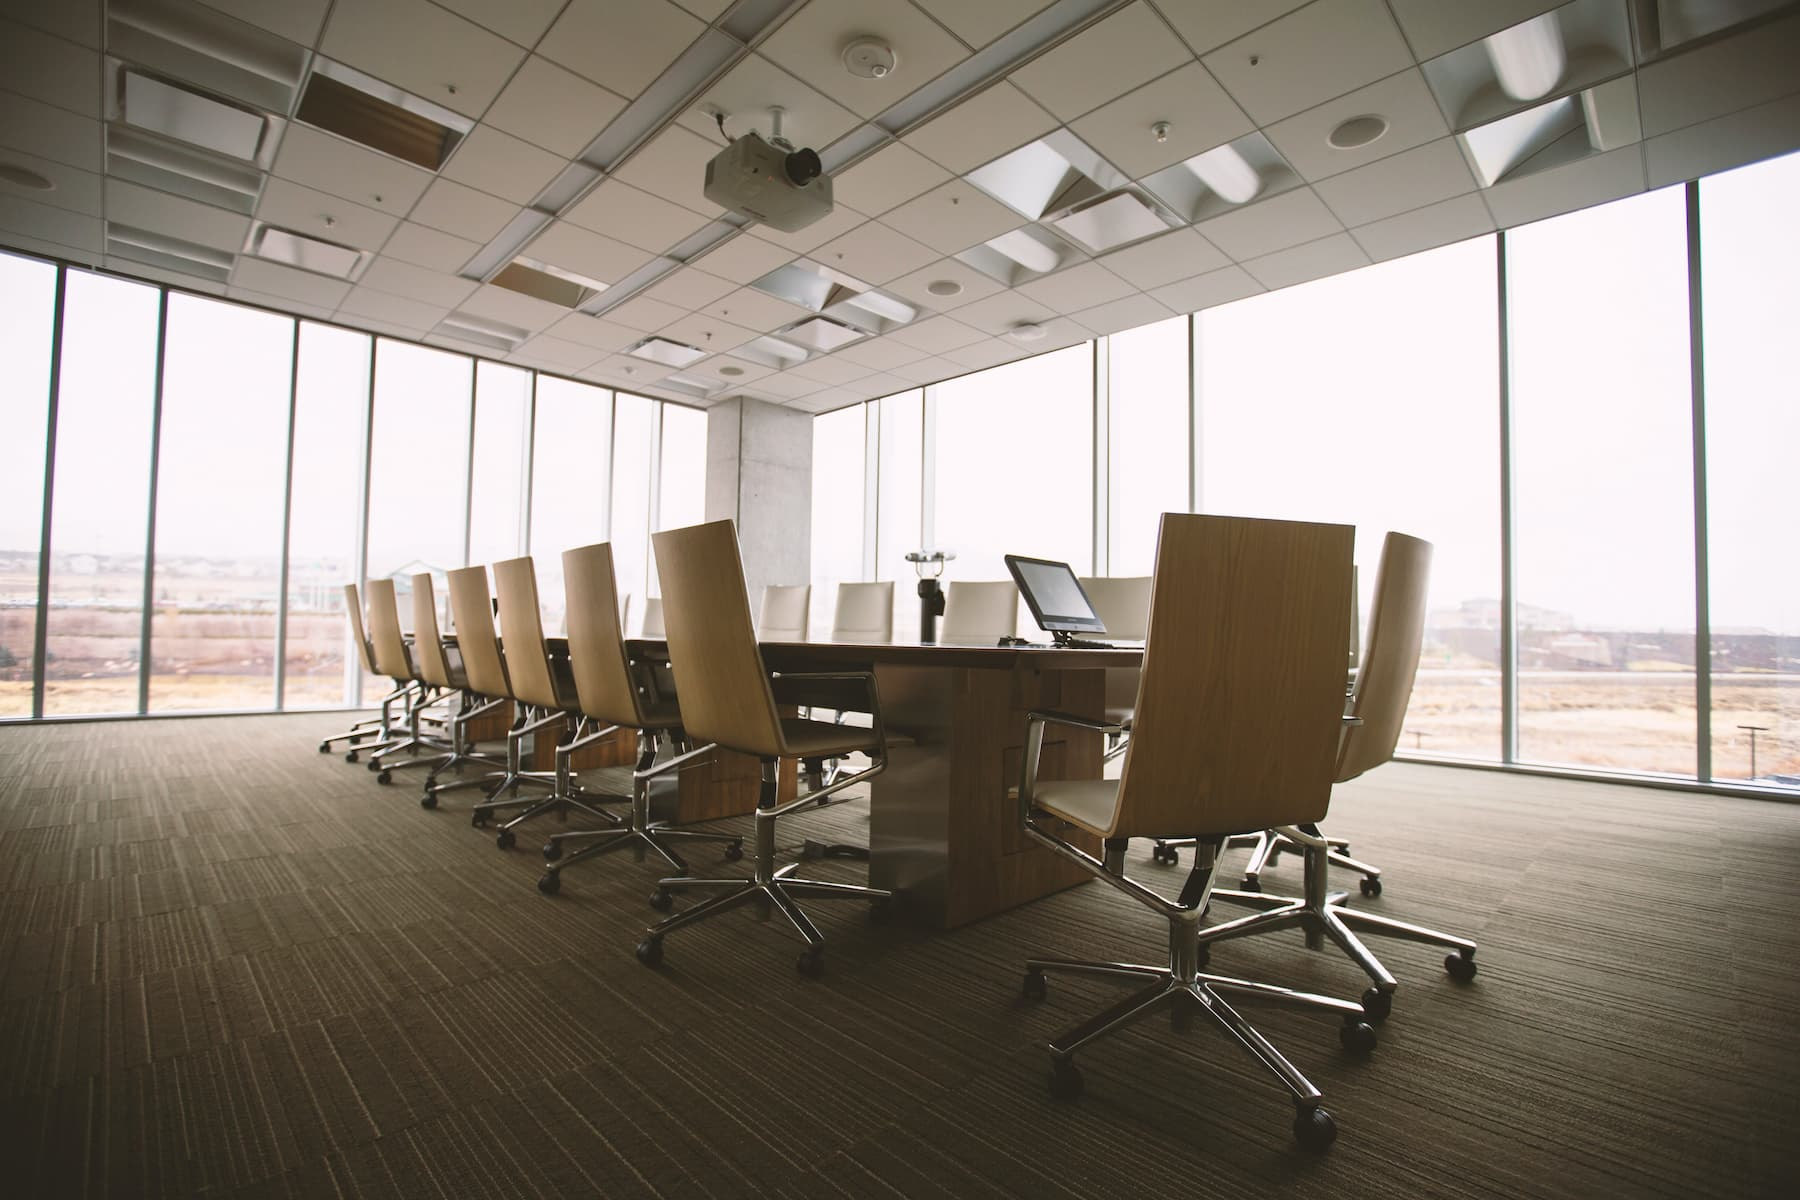 Boardroom where employer and employees would meet